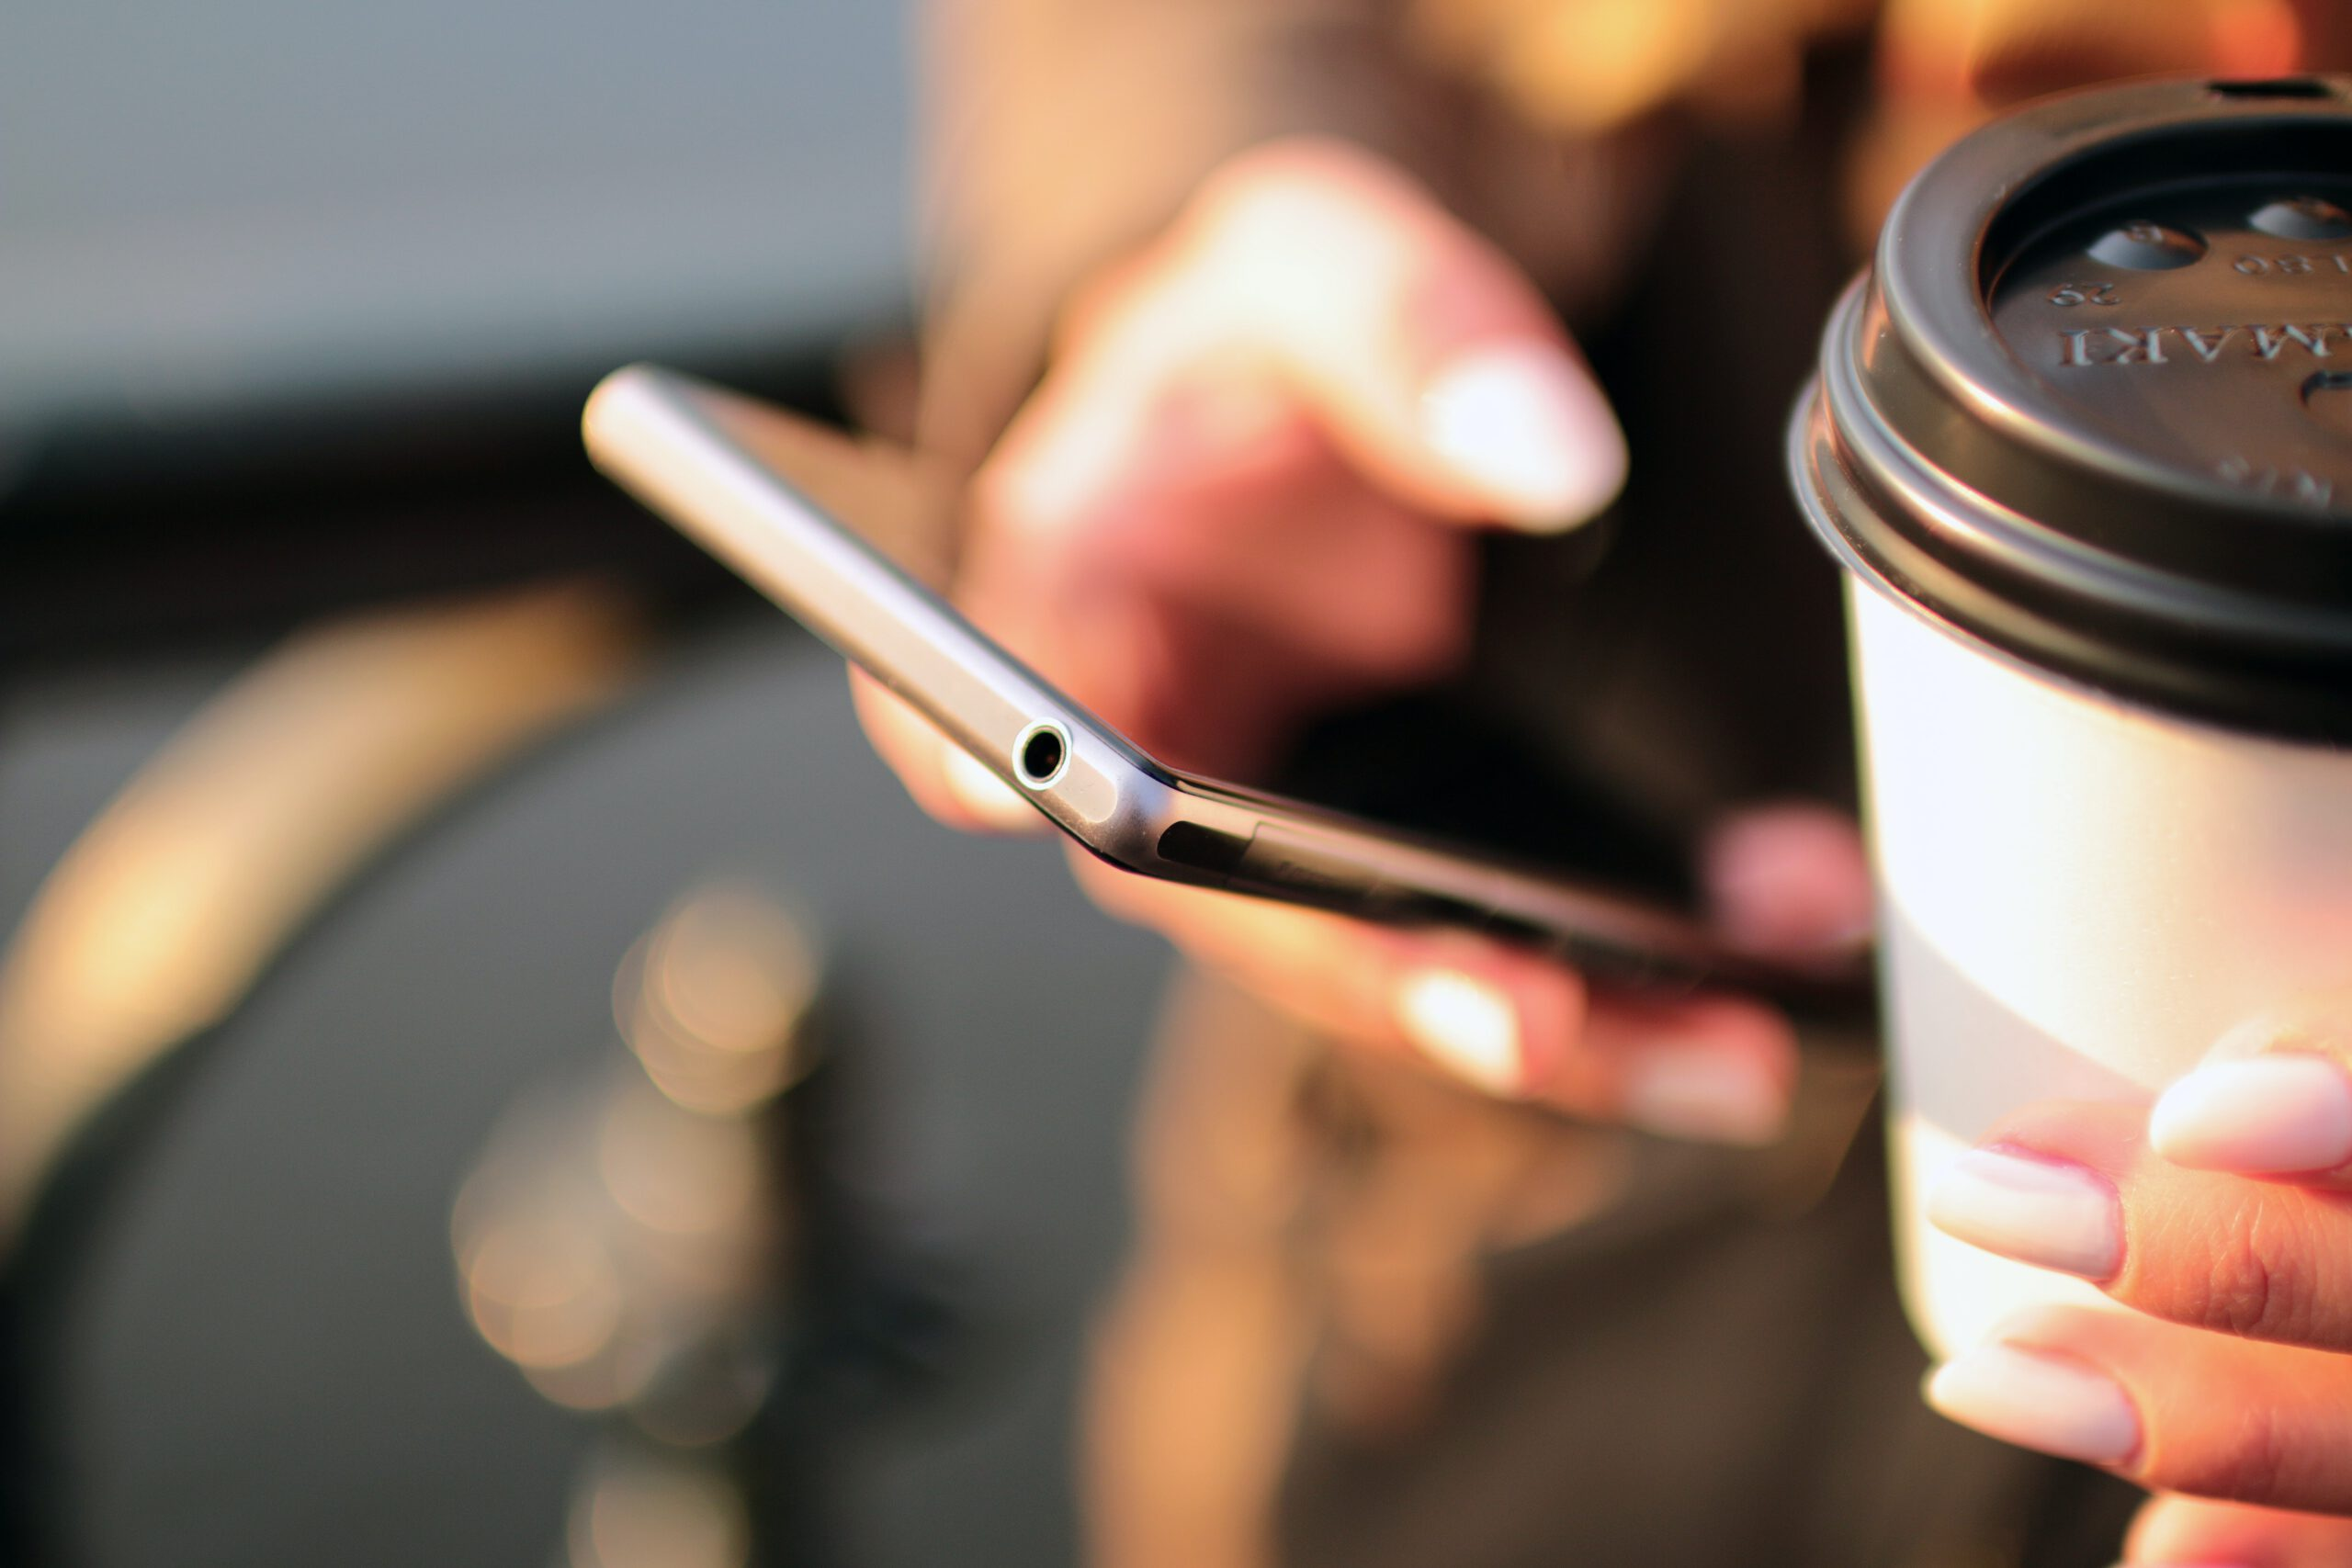 coffee-contact-email-hands-4831